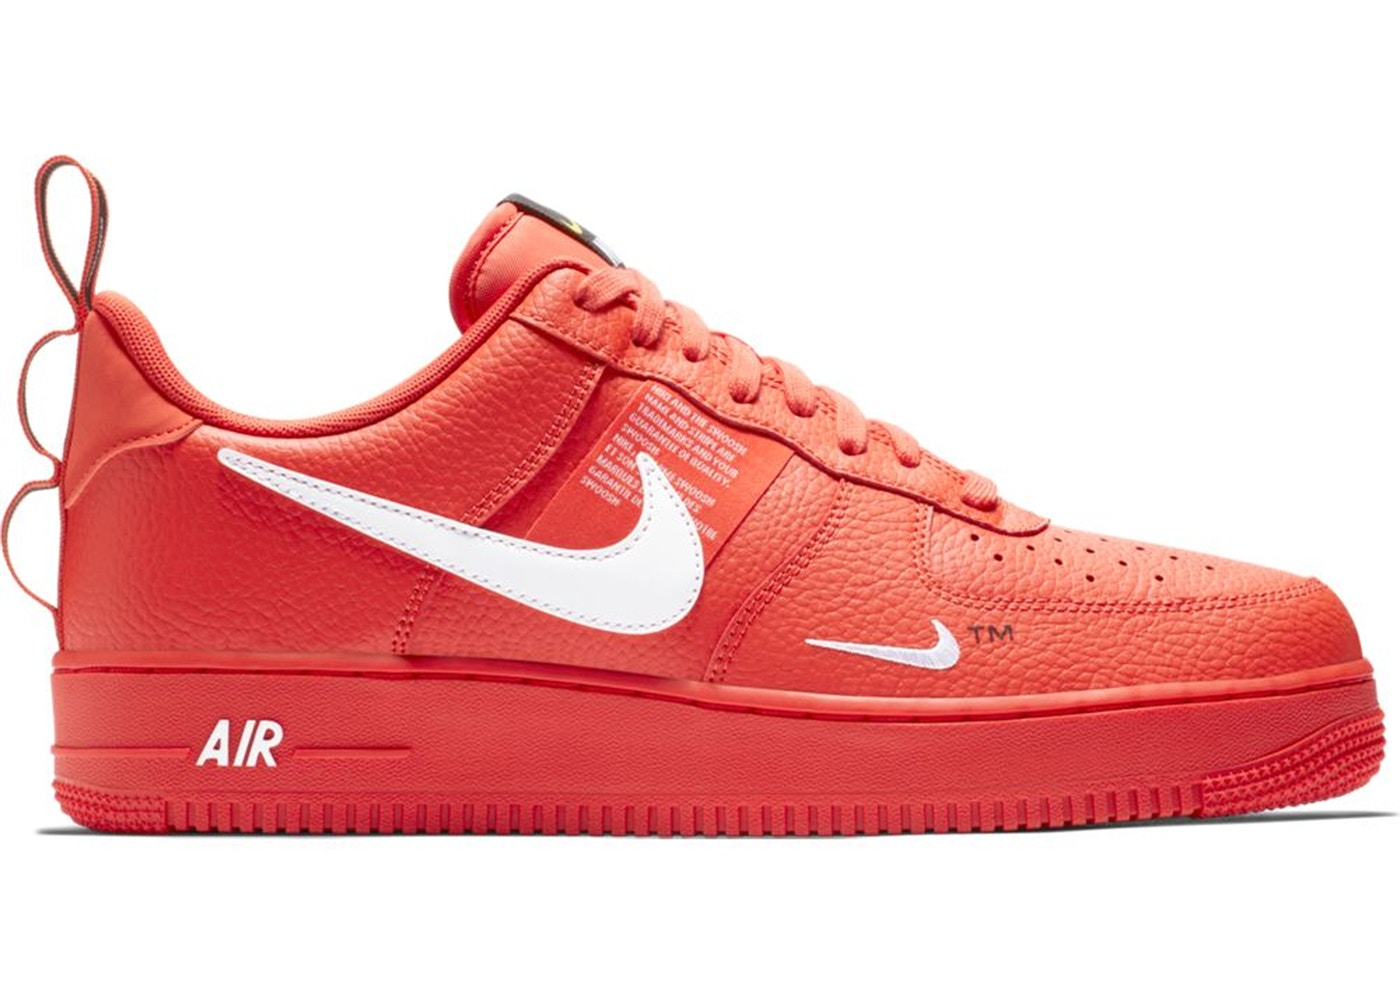 ナイキ NIKE エア チーム スニーカー 【 AIR TEAM FORCE 1 LOW UTILITY ORANGE BLACKTOUR YELLOWWHITE 】 メンズ